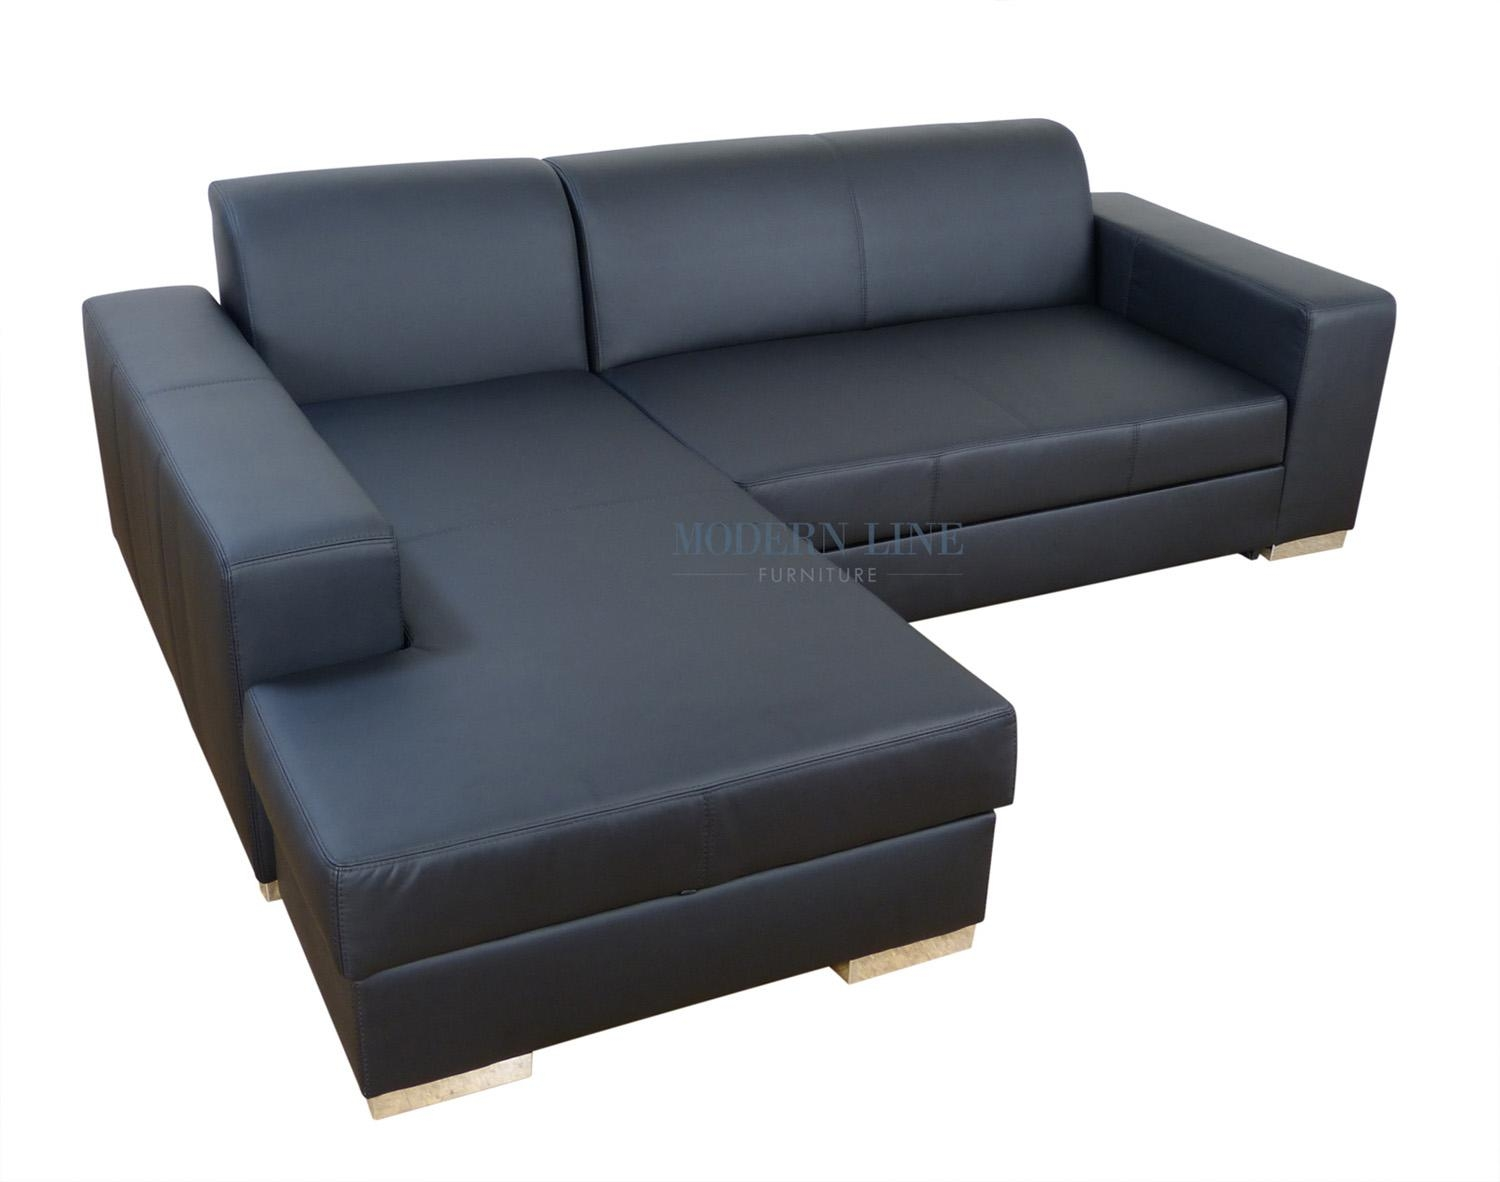 Furniture: Amusing Furniture Decorated L Shaped Sleeper Sofa For Throughout Black Leather Convertible Sofas (View 17 of 20)